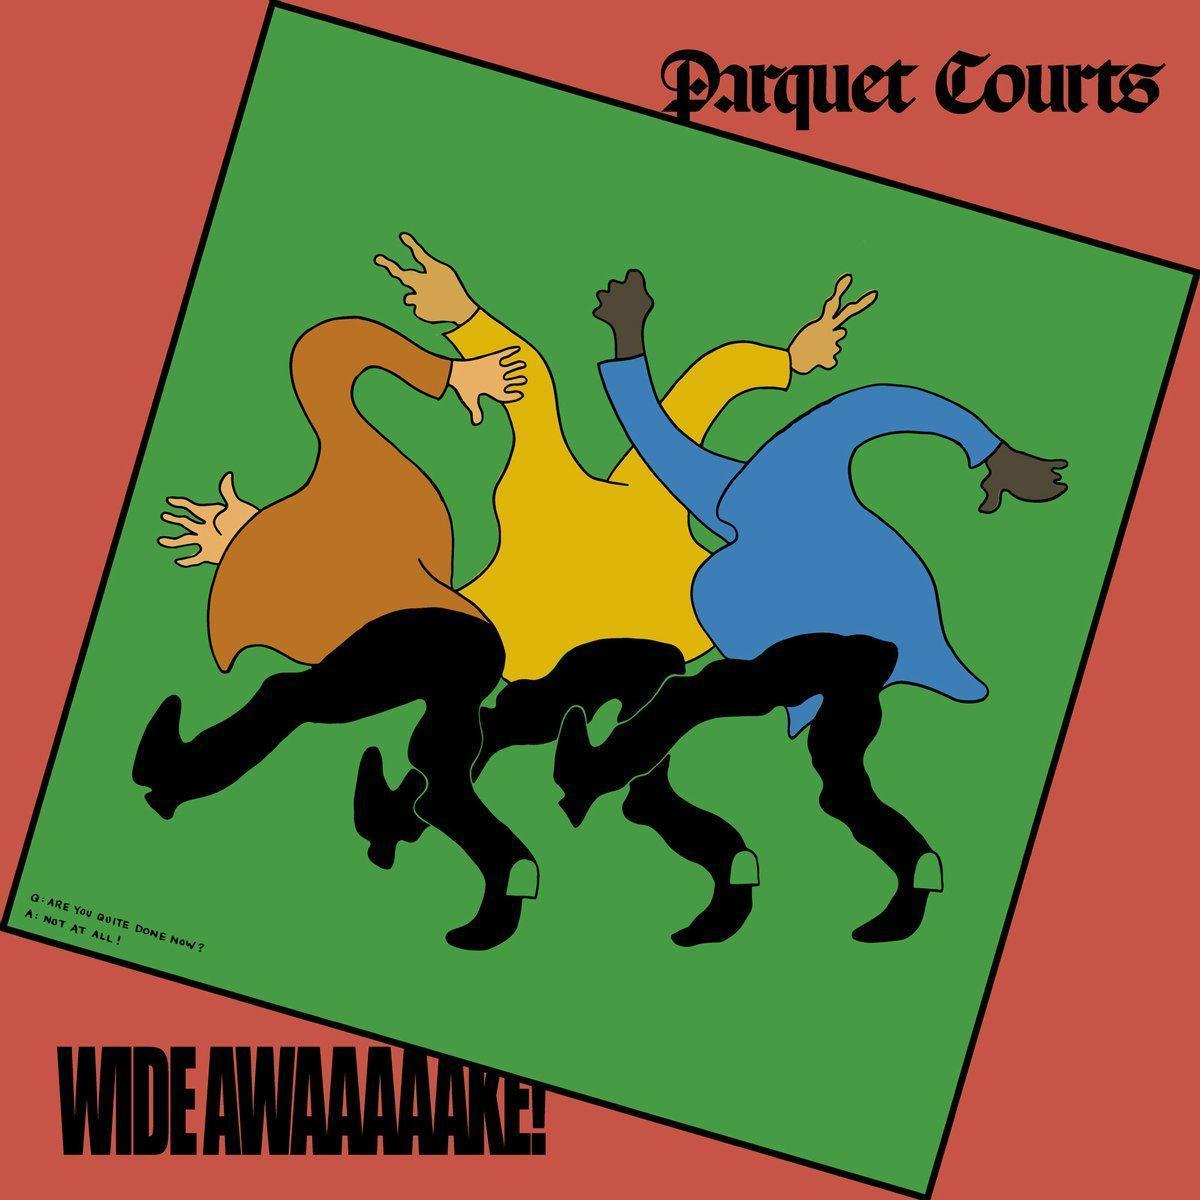 Just when you think you've nailed Parquet Courts down, they surprise you